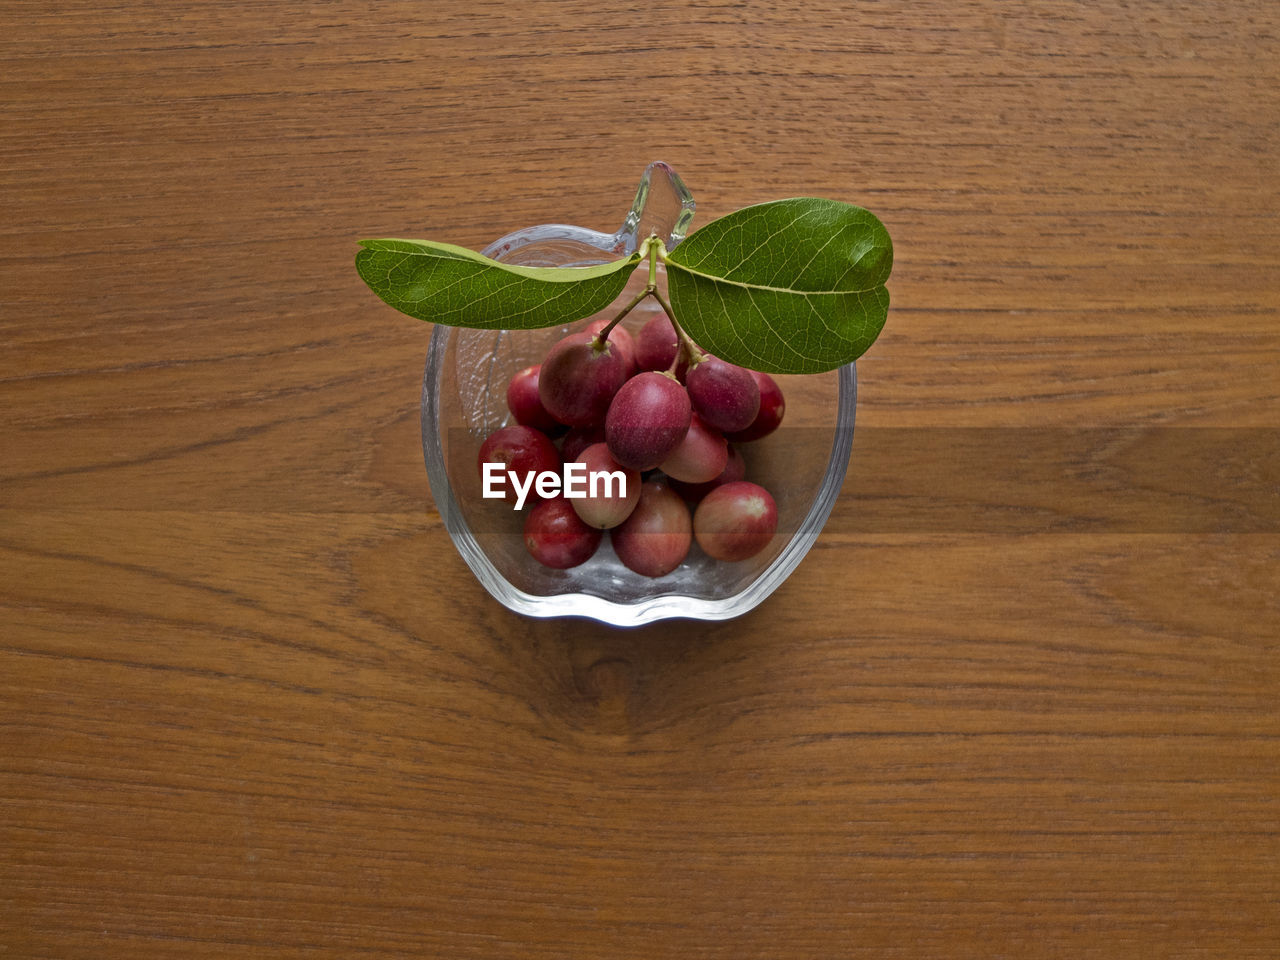 healthy eating, food, food and drink, wellbeing, table, wood - material, freshness, fruit, directly above, bowl, no people, indoors, high angle view, leaf, plant part, red, still life, organic, plate, green color, ripe, wood grain